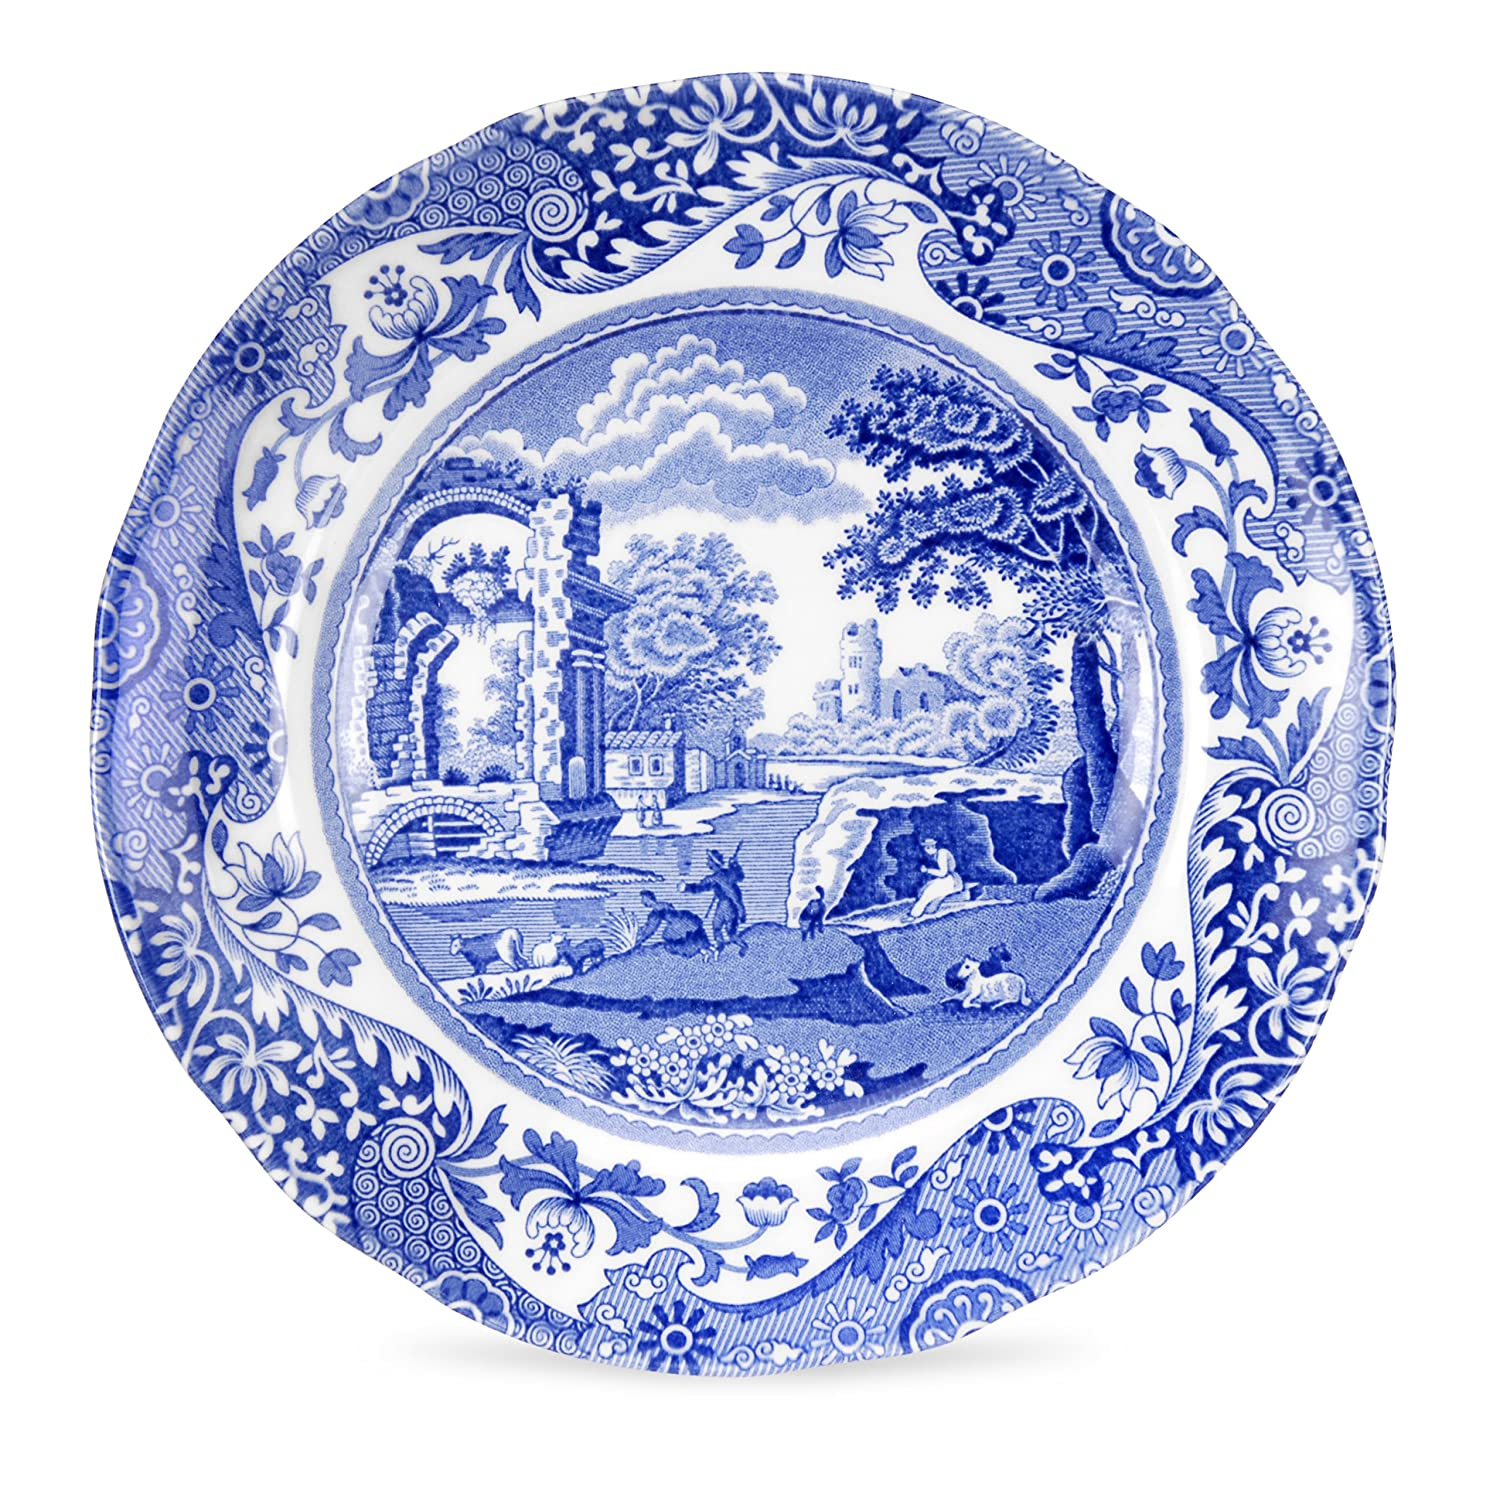 Amazon.com | Spode Blue Italian Bread and Butter Plate Set of 4 Bread u0026 Butter Plates  sc 1 st  Amazon.com & Amazon.com | Spode Blue Italian Bread and Butter Plate Set of 4 ...